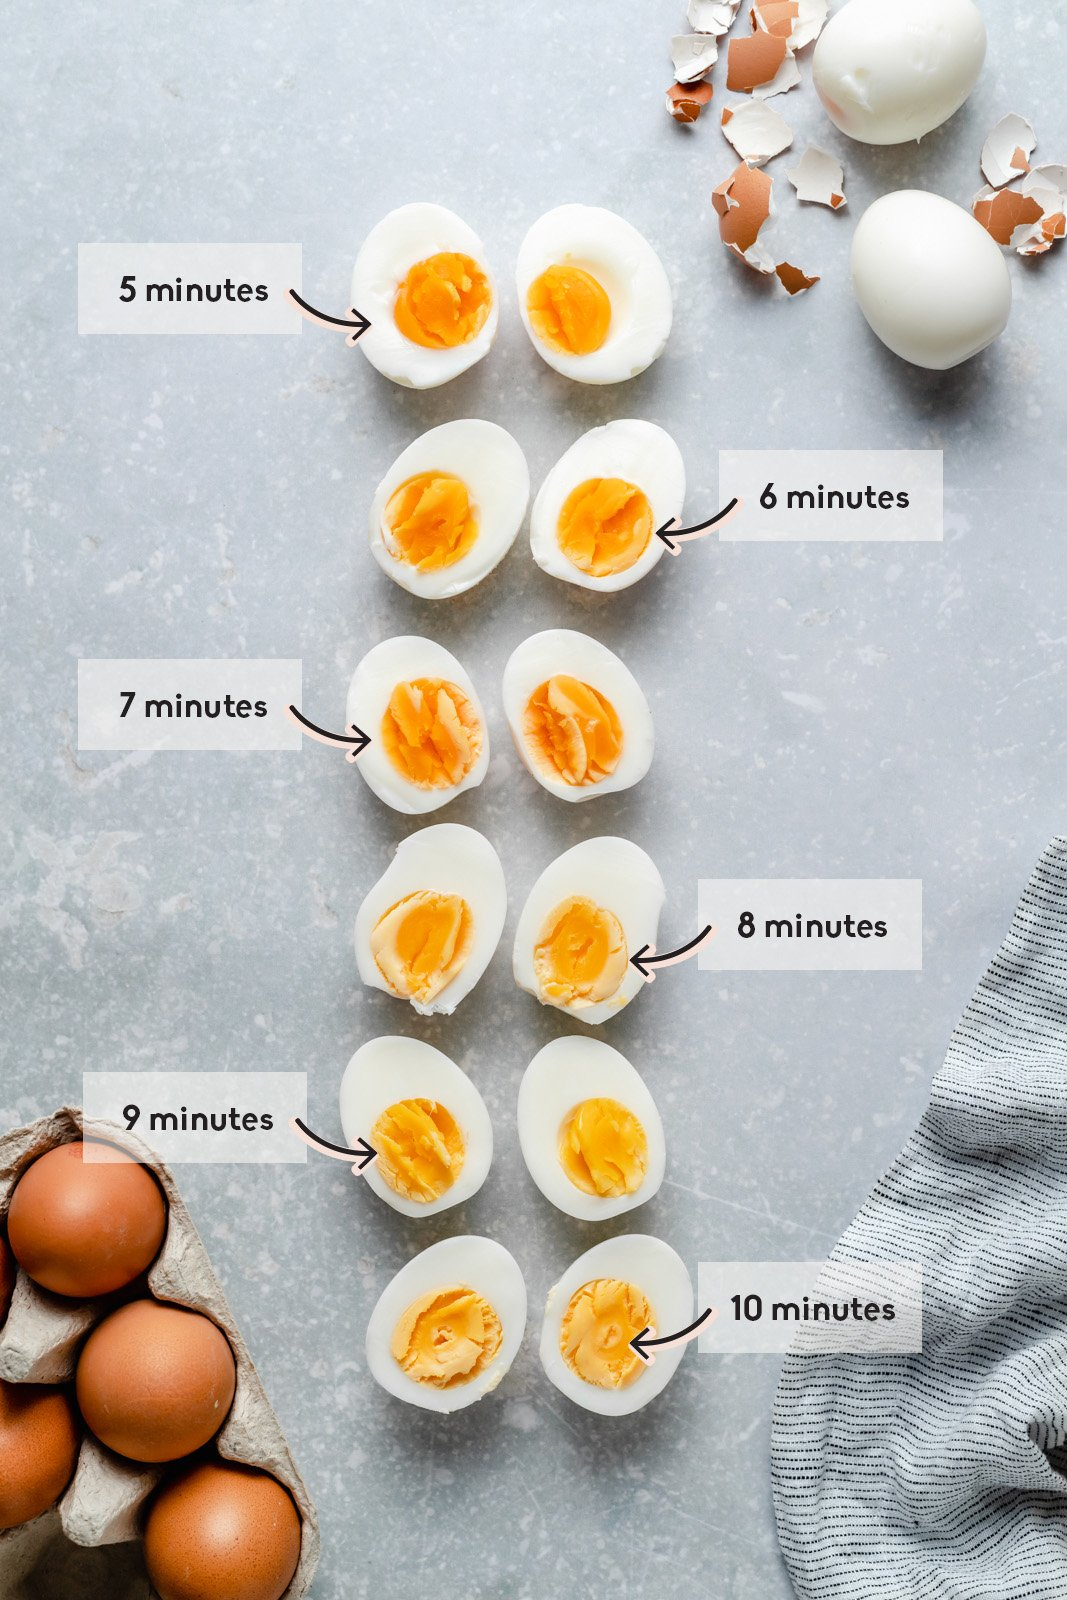 hard boiled eggs lined up with cook times listed next to them